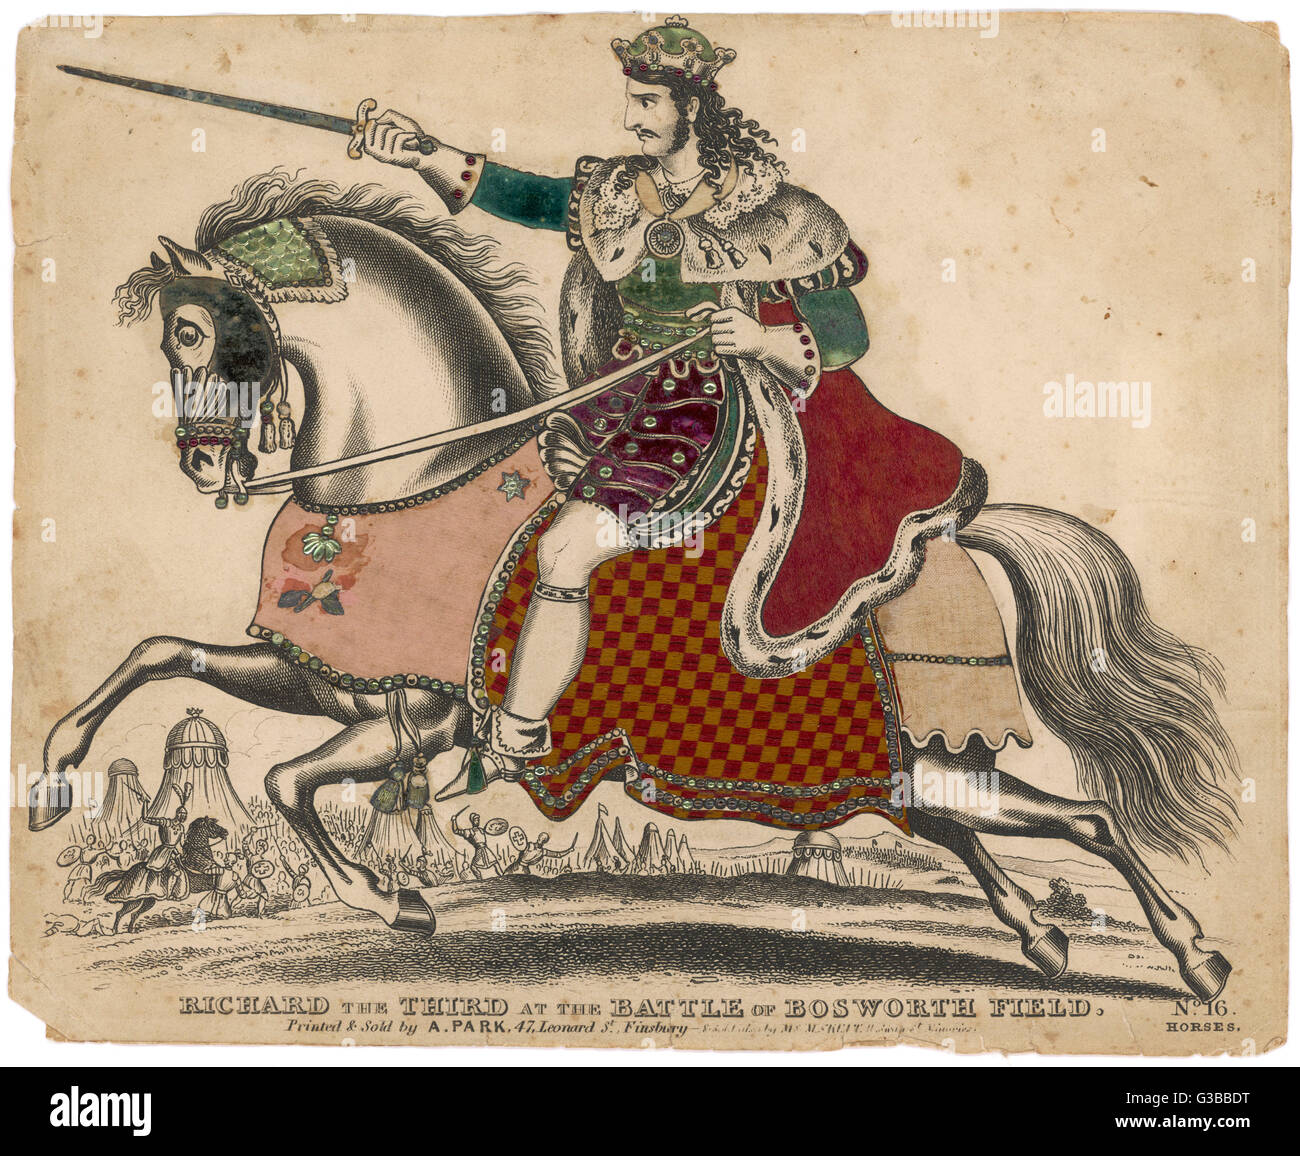 KING RICHARD III OF ENGLAND  depicted at the fatal battle  of Bosworth Field - a  splendidly stylised depiction - Stock Image